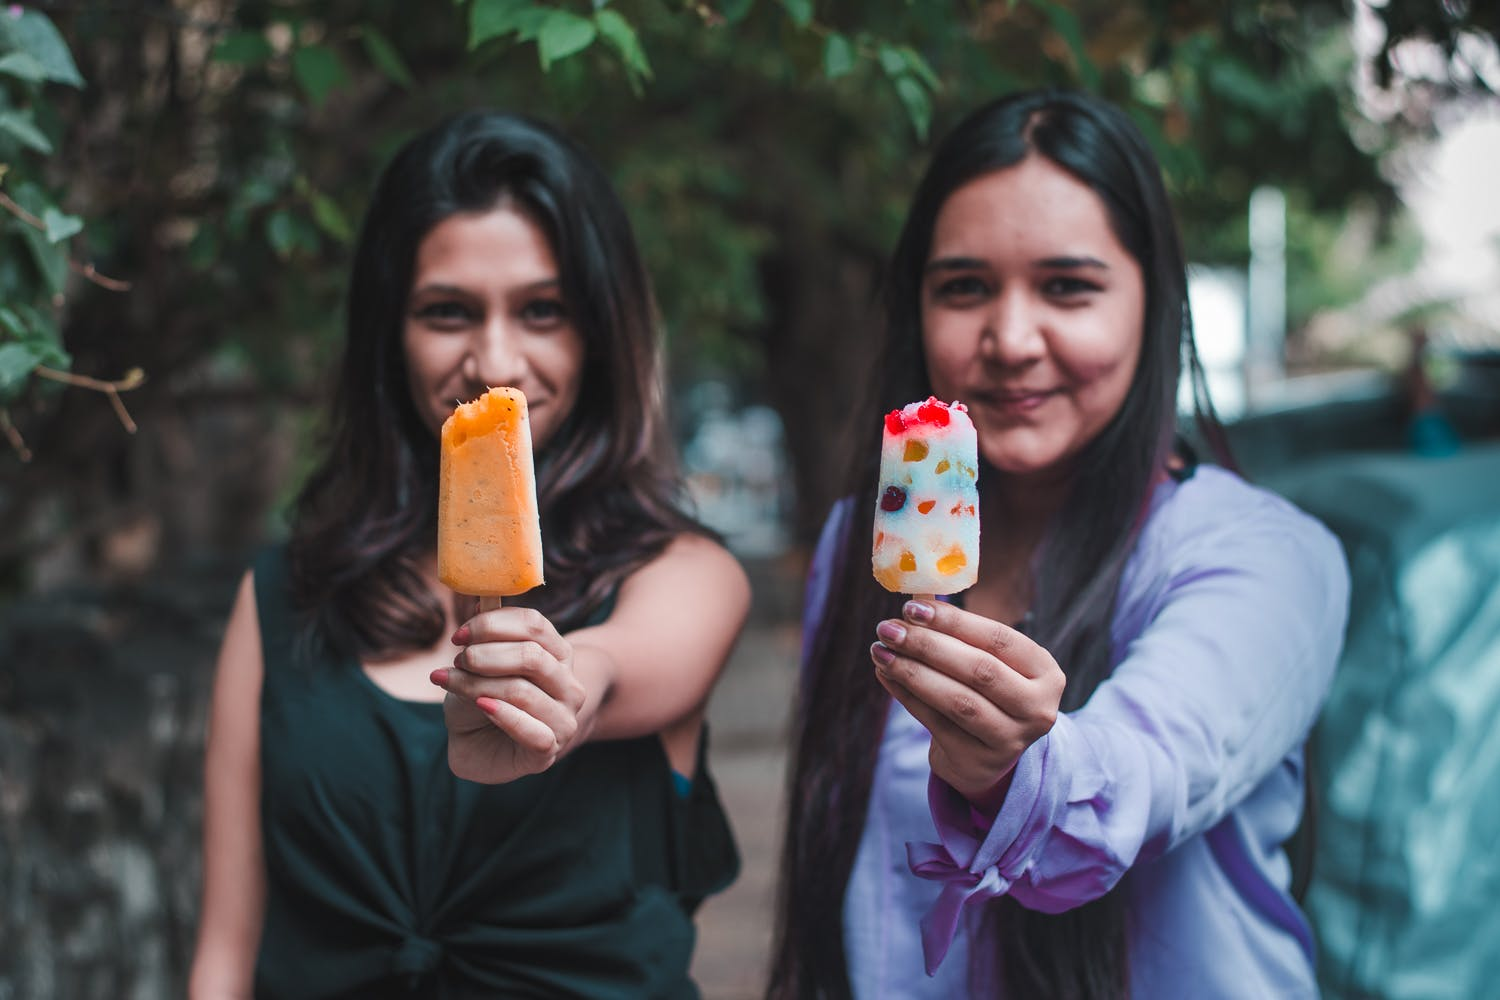 Mumbai Folks, Beat The Summer Heat With Our Fruity Popsicle Week!